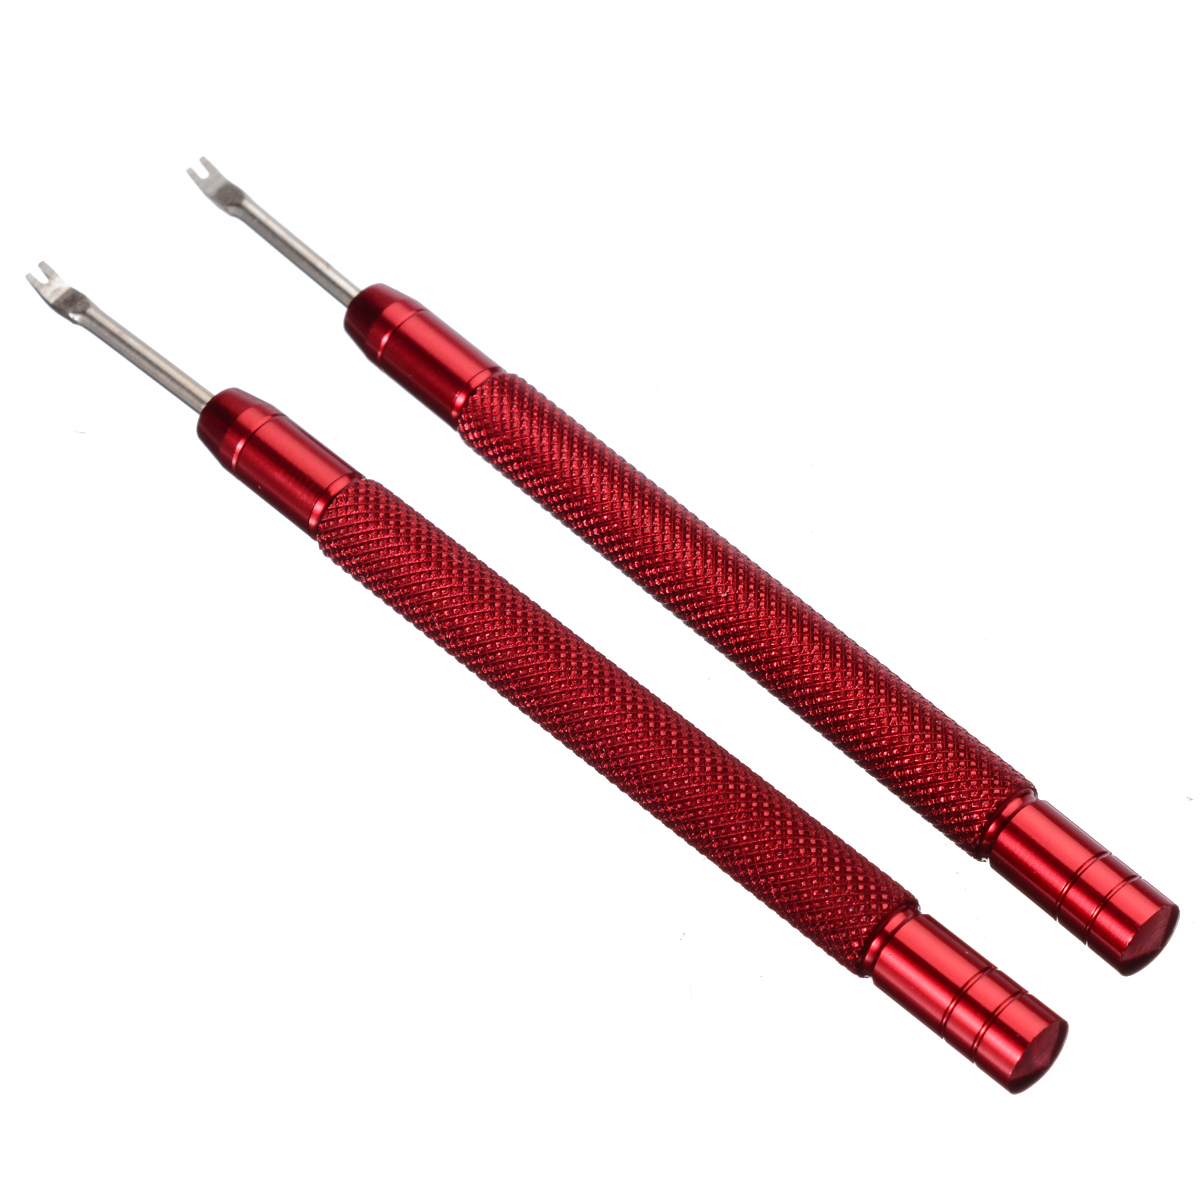 2pcs Metal Precision Watch Hand Remover Tools Pin Lever Replace Watch Repair Accessories  For Watchmaker Watch Repairing